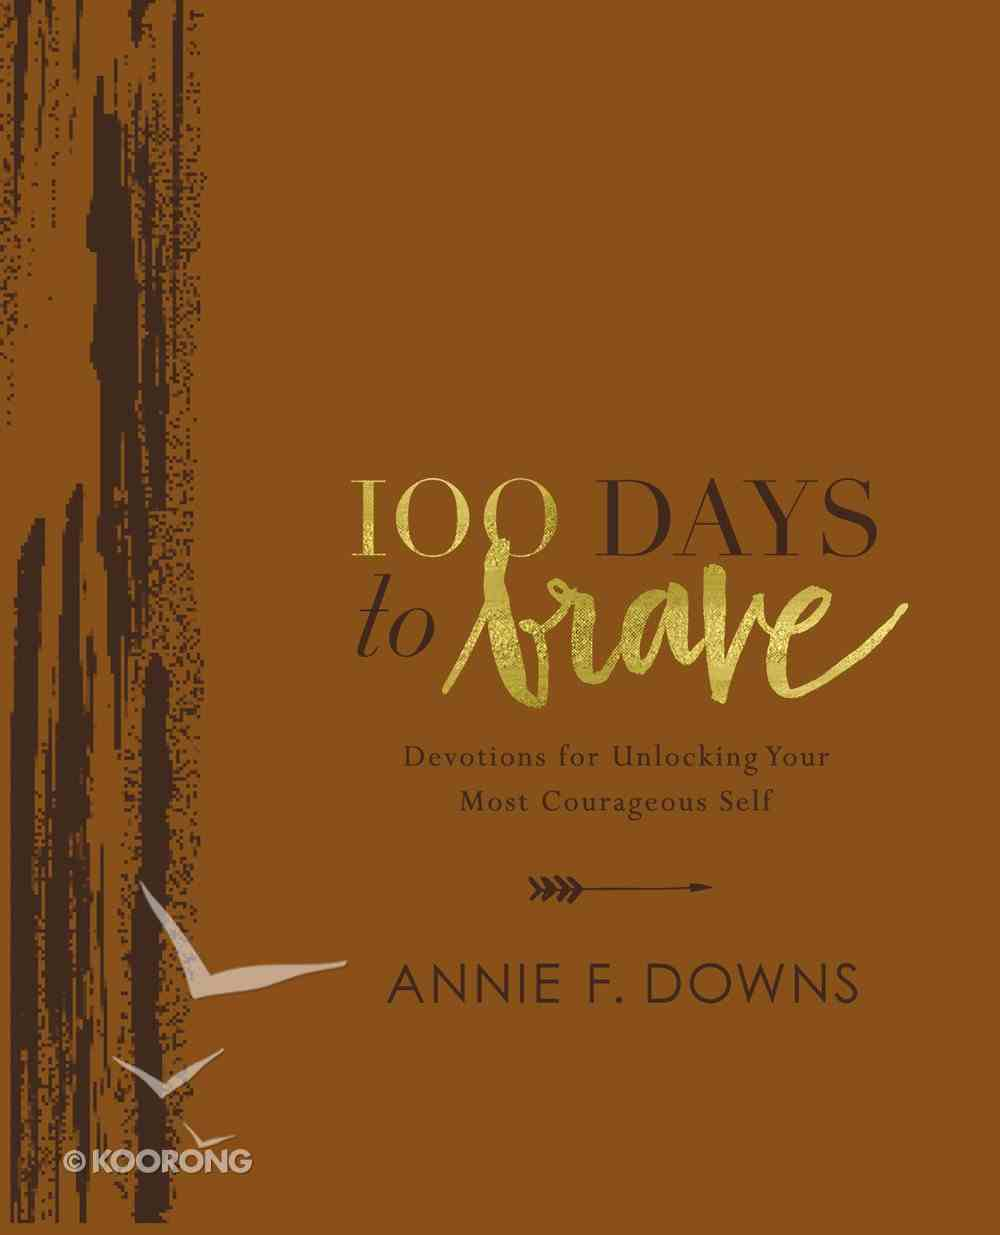 100 Days to Brave Deluxe Edition: Devotions For Unlocking Your Most Courageous Self Imitation Leather